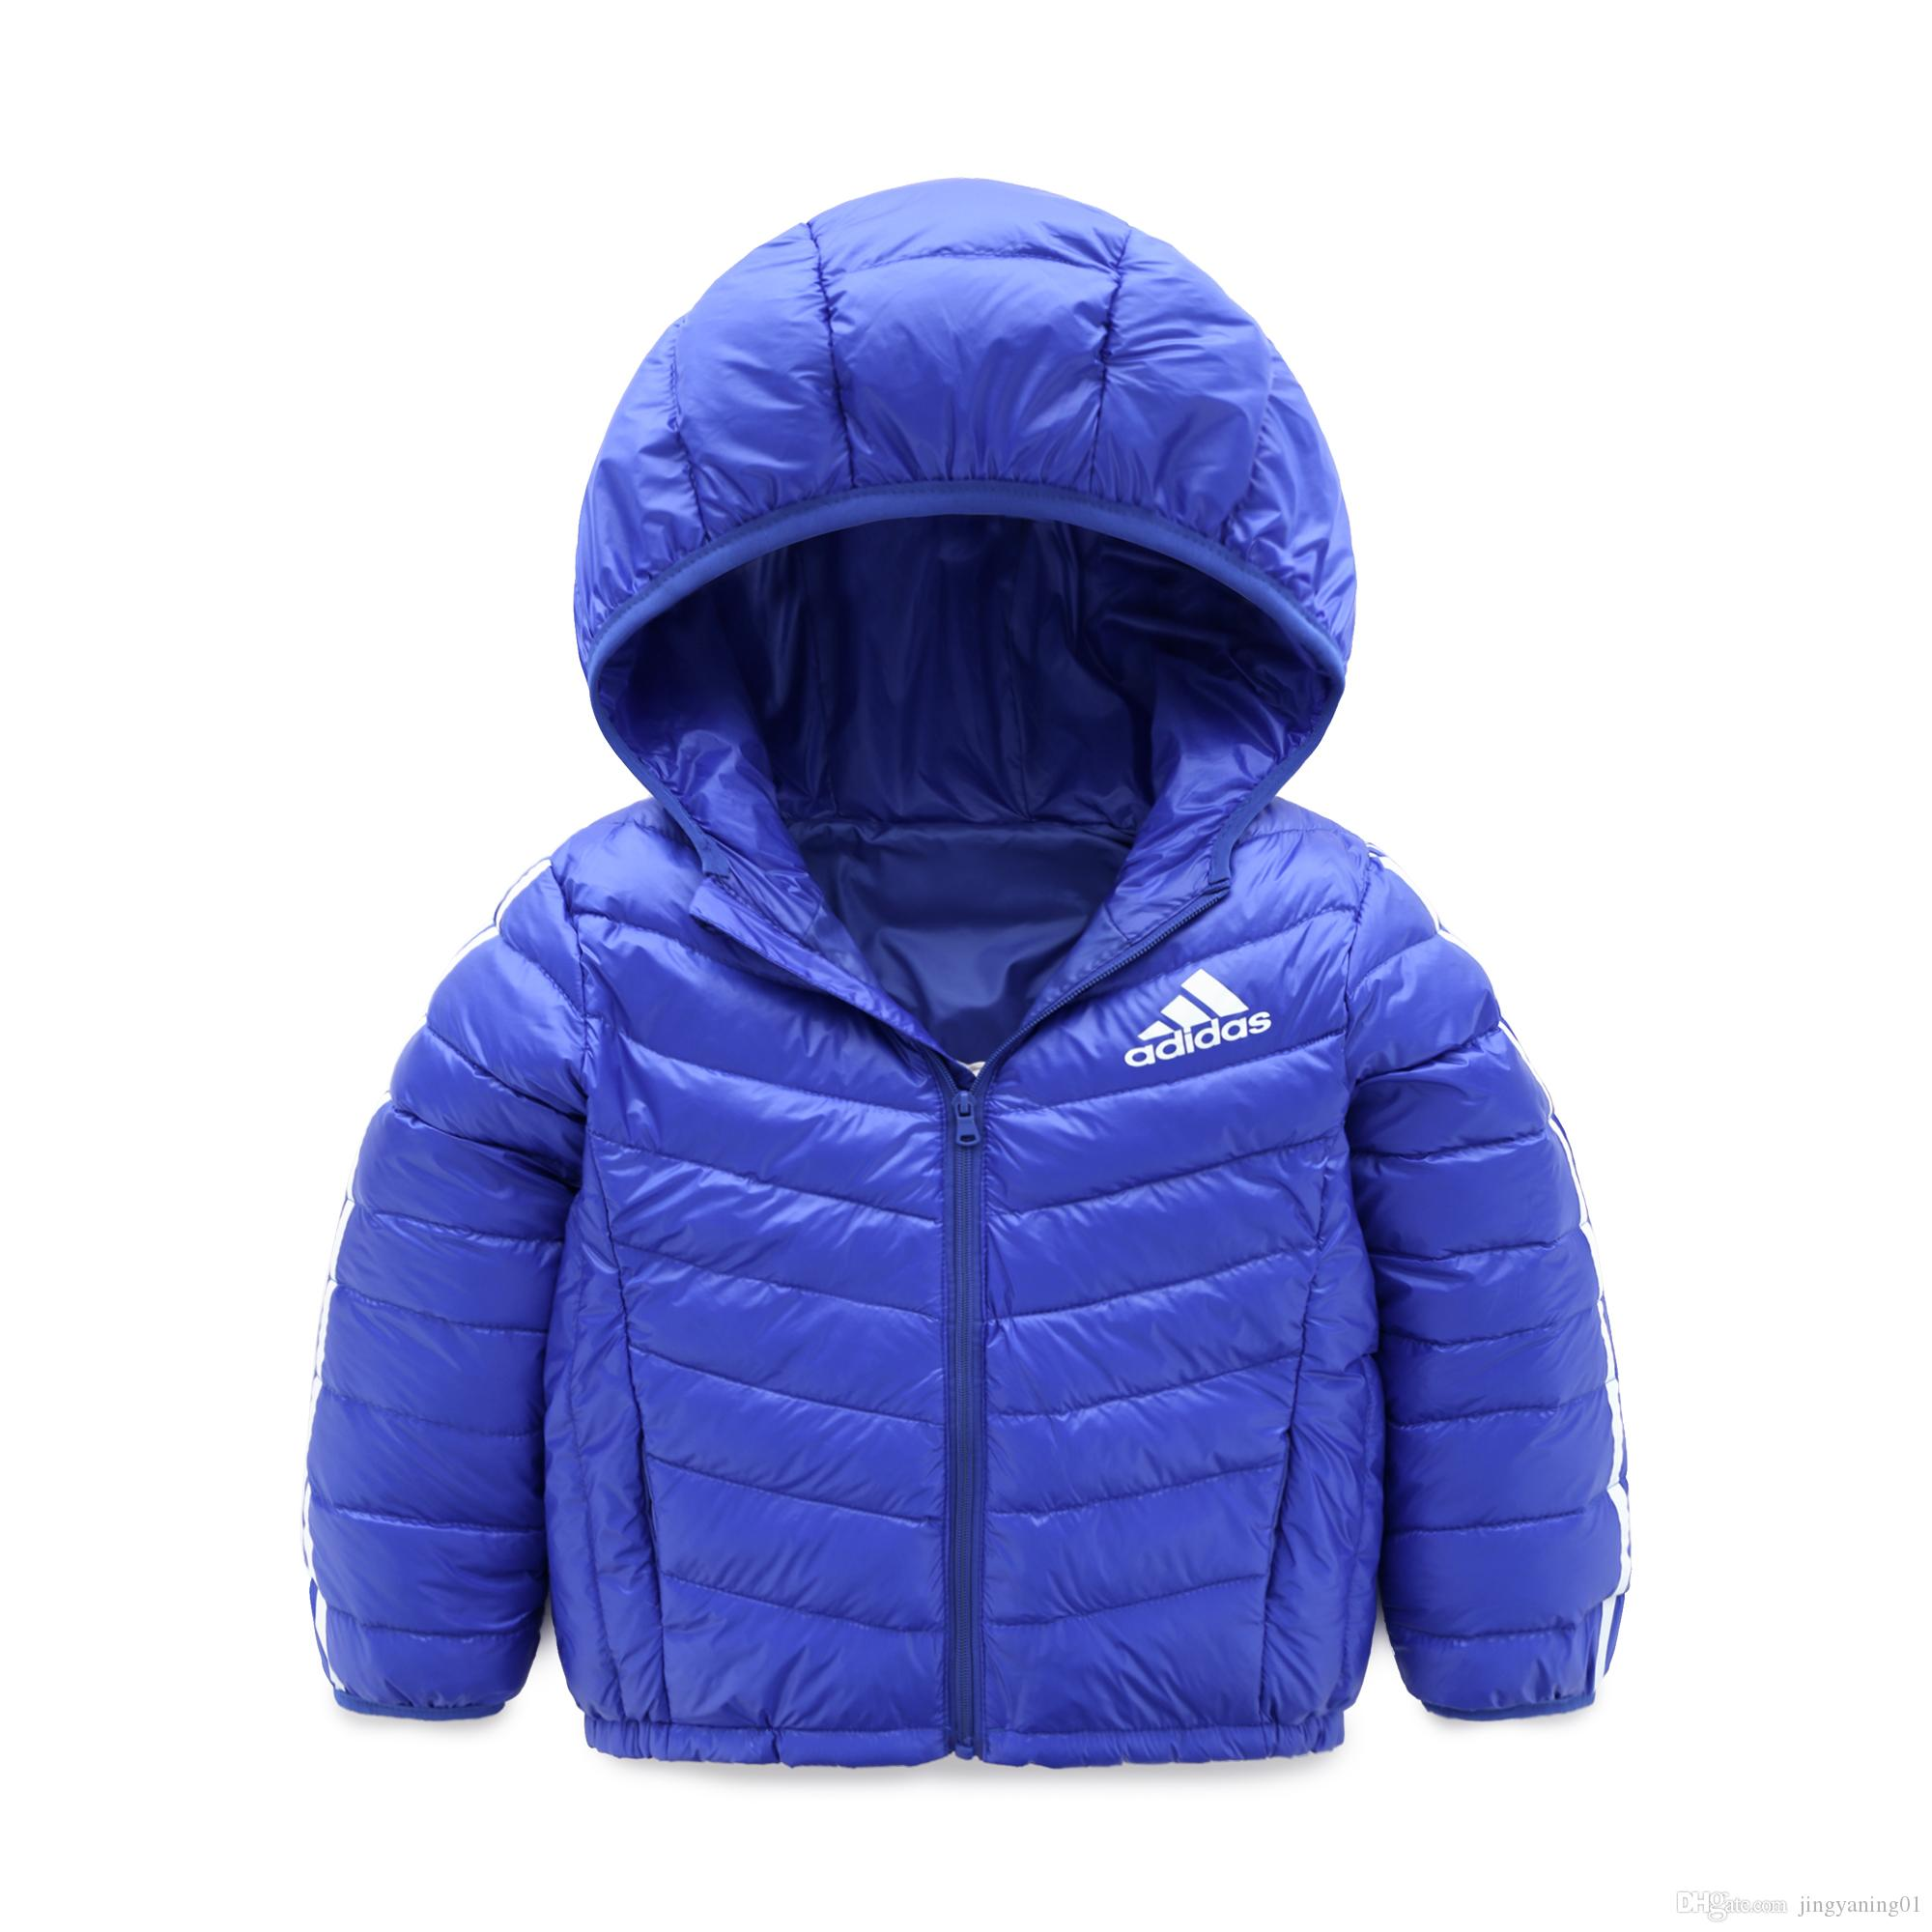 f29c58c9d1cf T888 Baby Boys Jacket Winter Jacket For Girls Jacket Kids Warm Hooded Pure  Color Infant Boys Coat Children Outerwear Clothes Down Coats For Kids Boys  Down ...